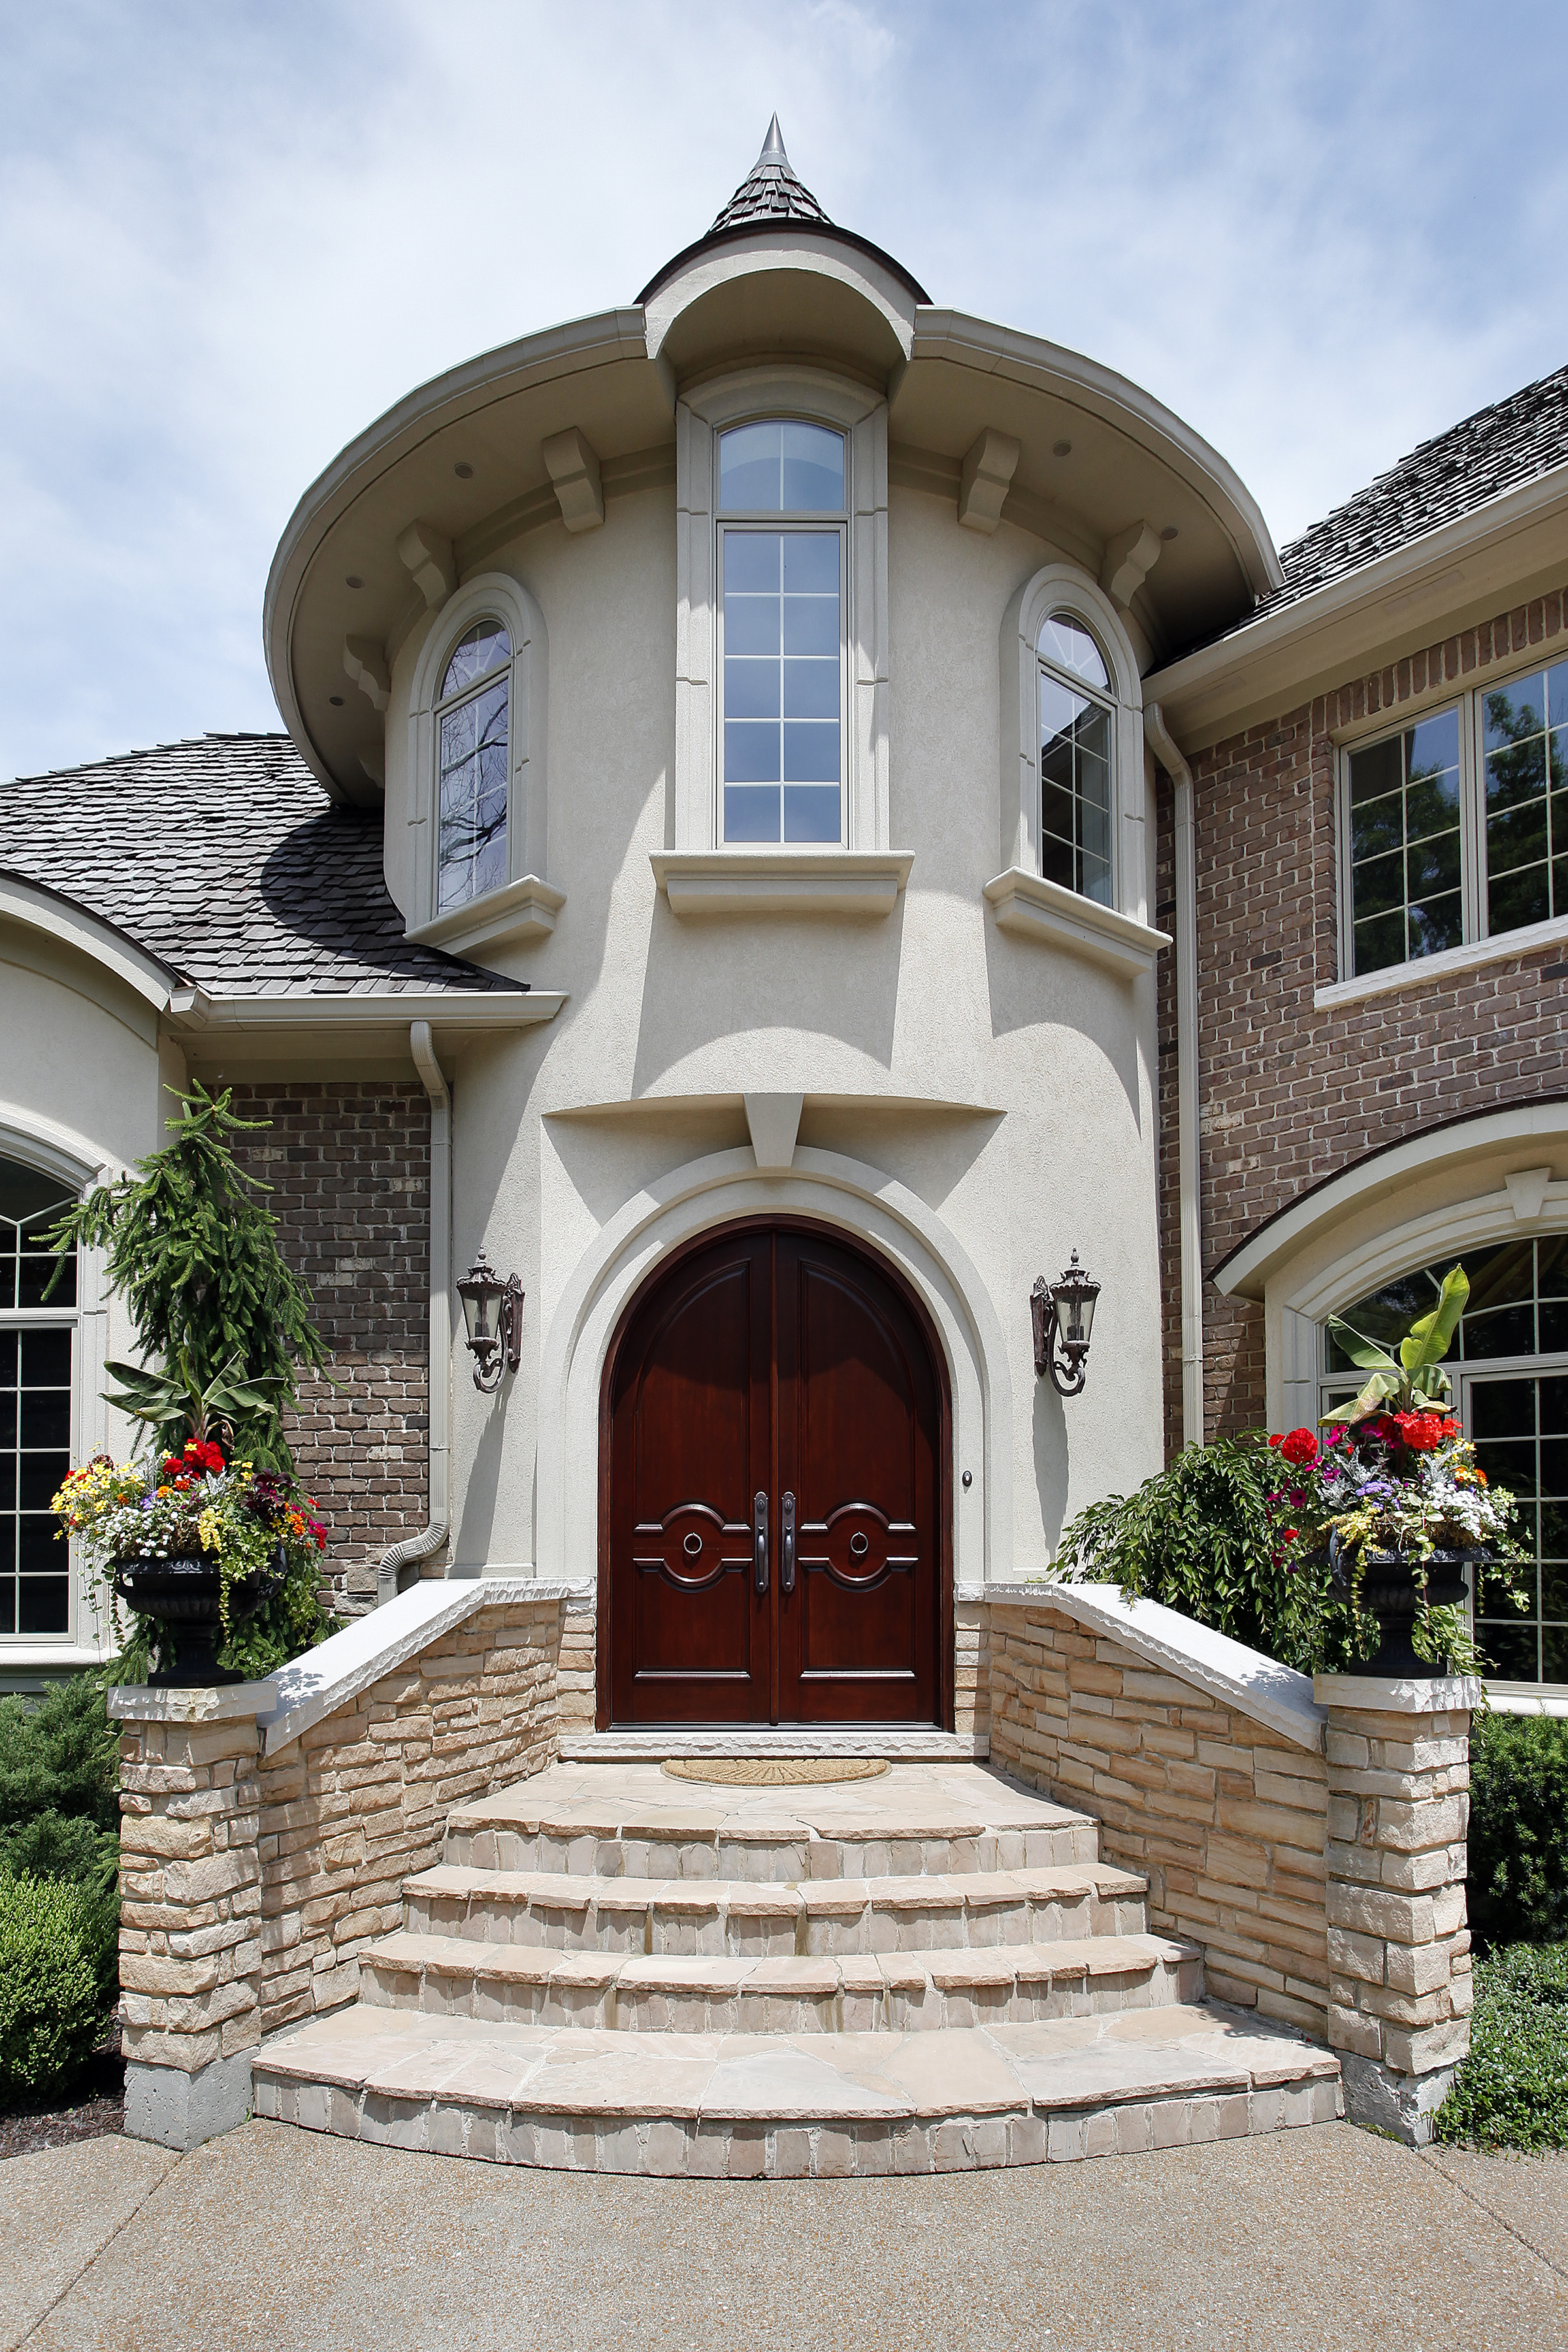 bigstock-Entry-Way-With-Stone-Steps-7271528